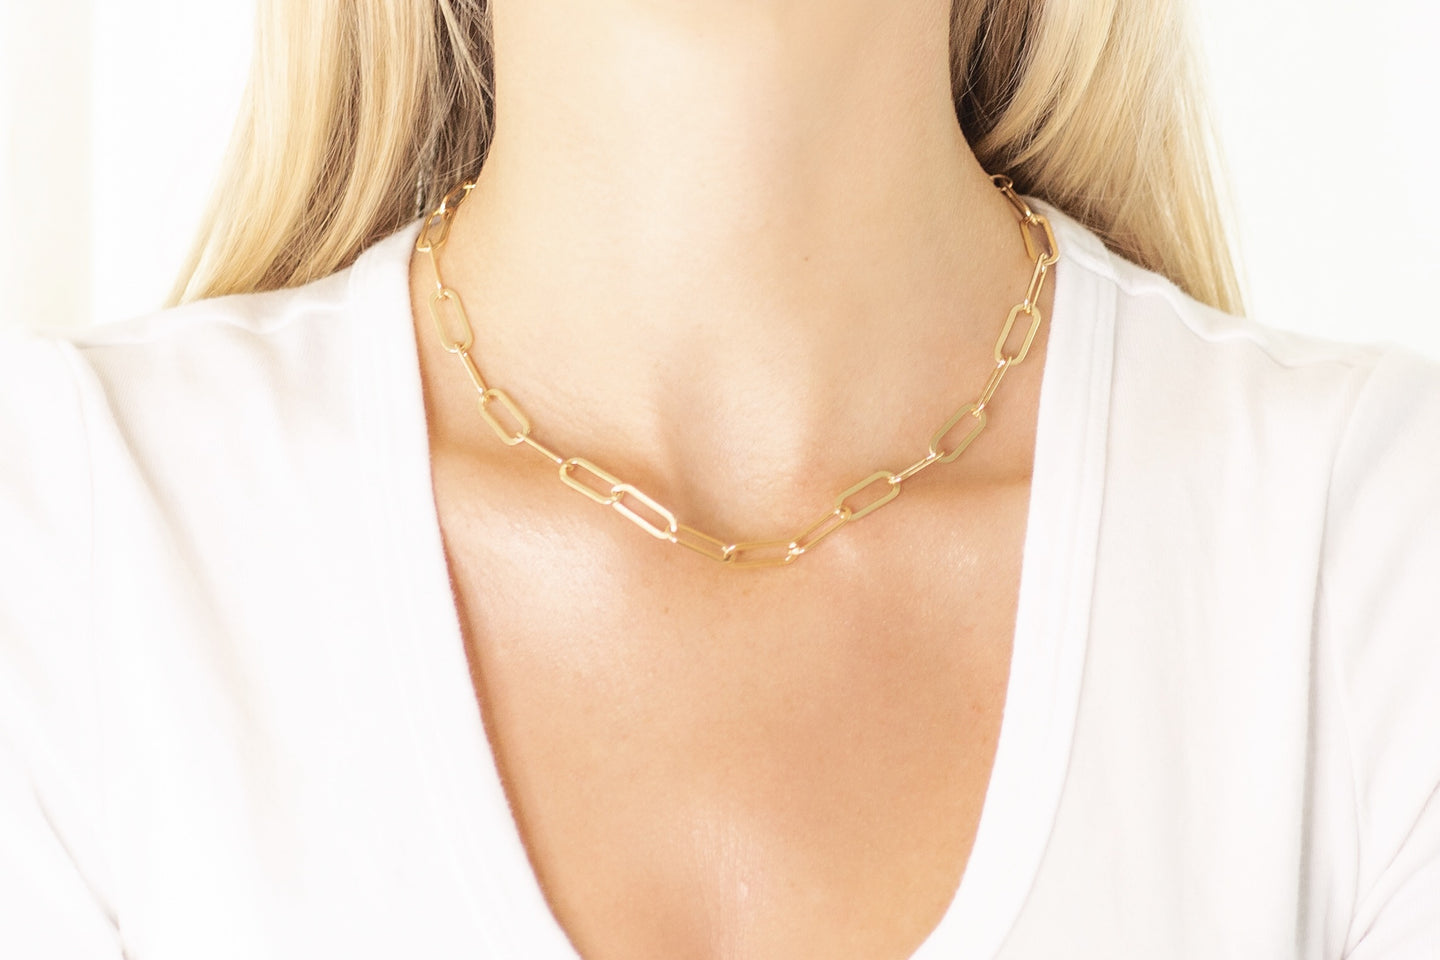 Large Oval Link Chain Necklace